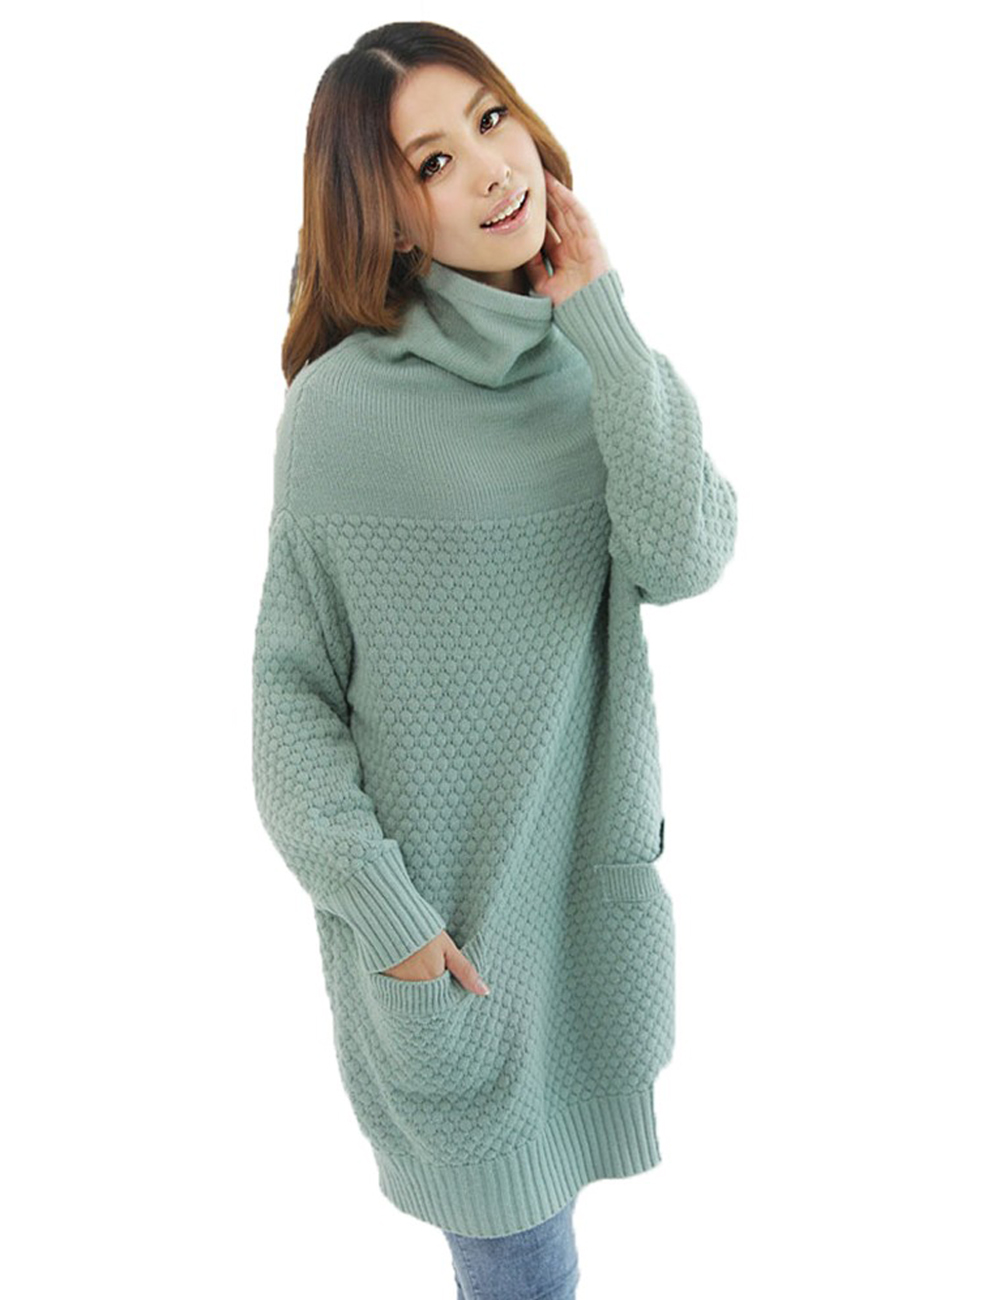 Wool Turtleneck Sweater Dresses for Women | Dress images